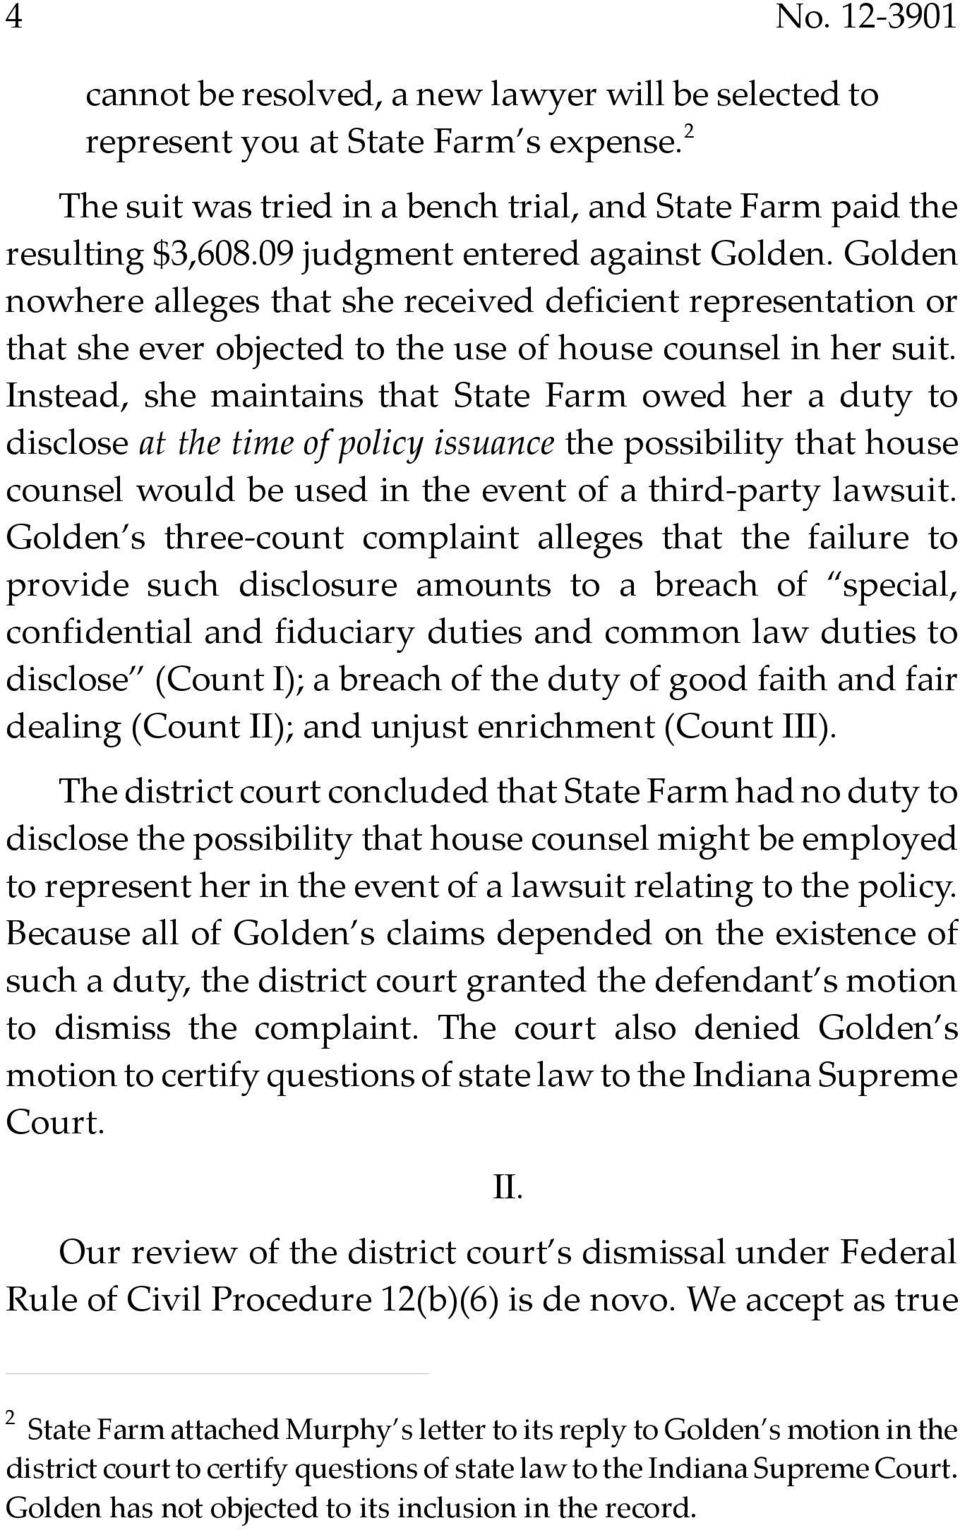 Instead, she maintains that State Farm owed her a duty to disclose at the time of policy issuance the possibility that house counsel would be used in the event of a third-party lawsuit.